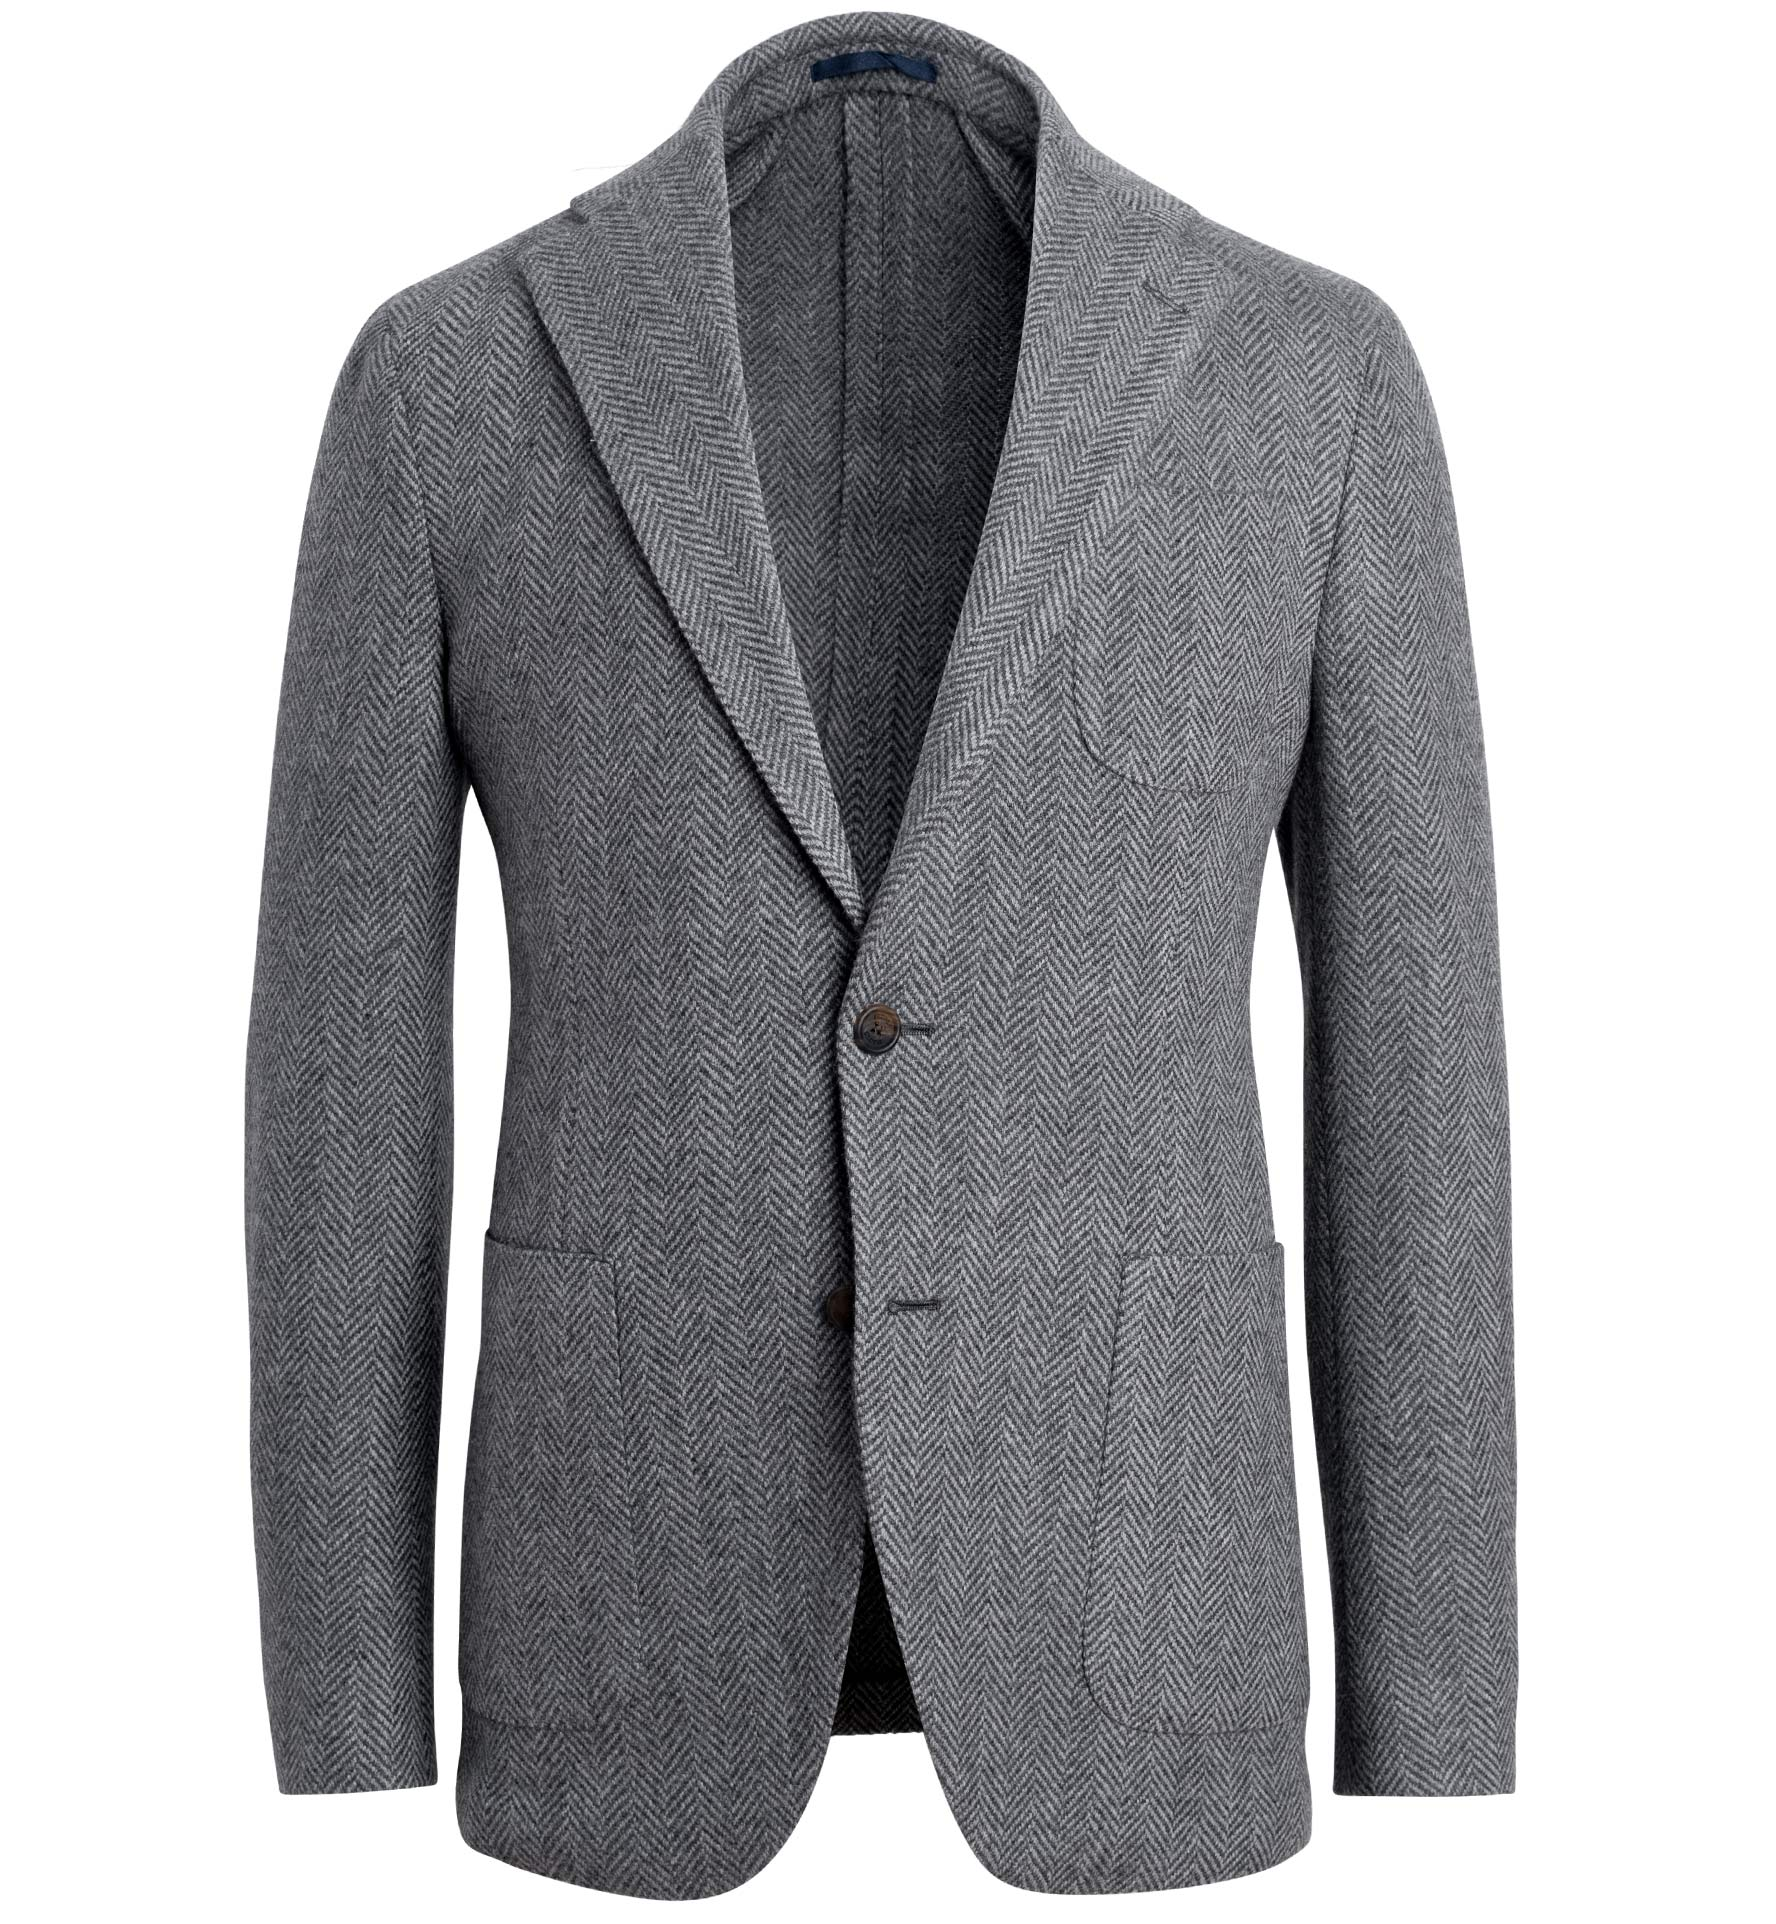 Zoom Image of Waverly Grey Lambswool Herringbone Jacket